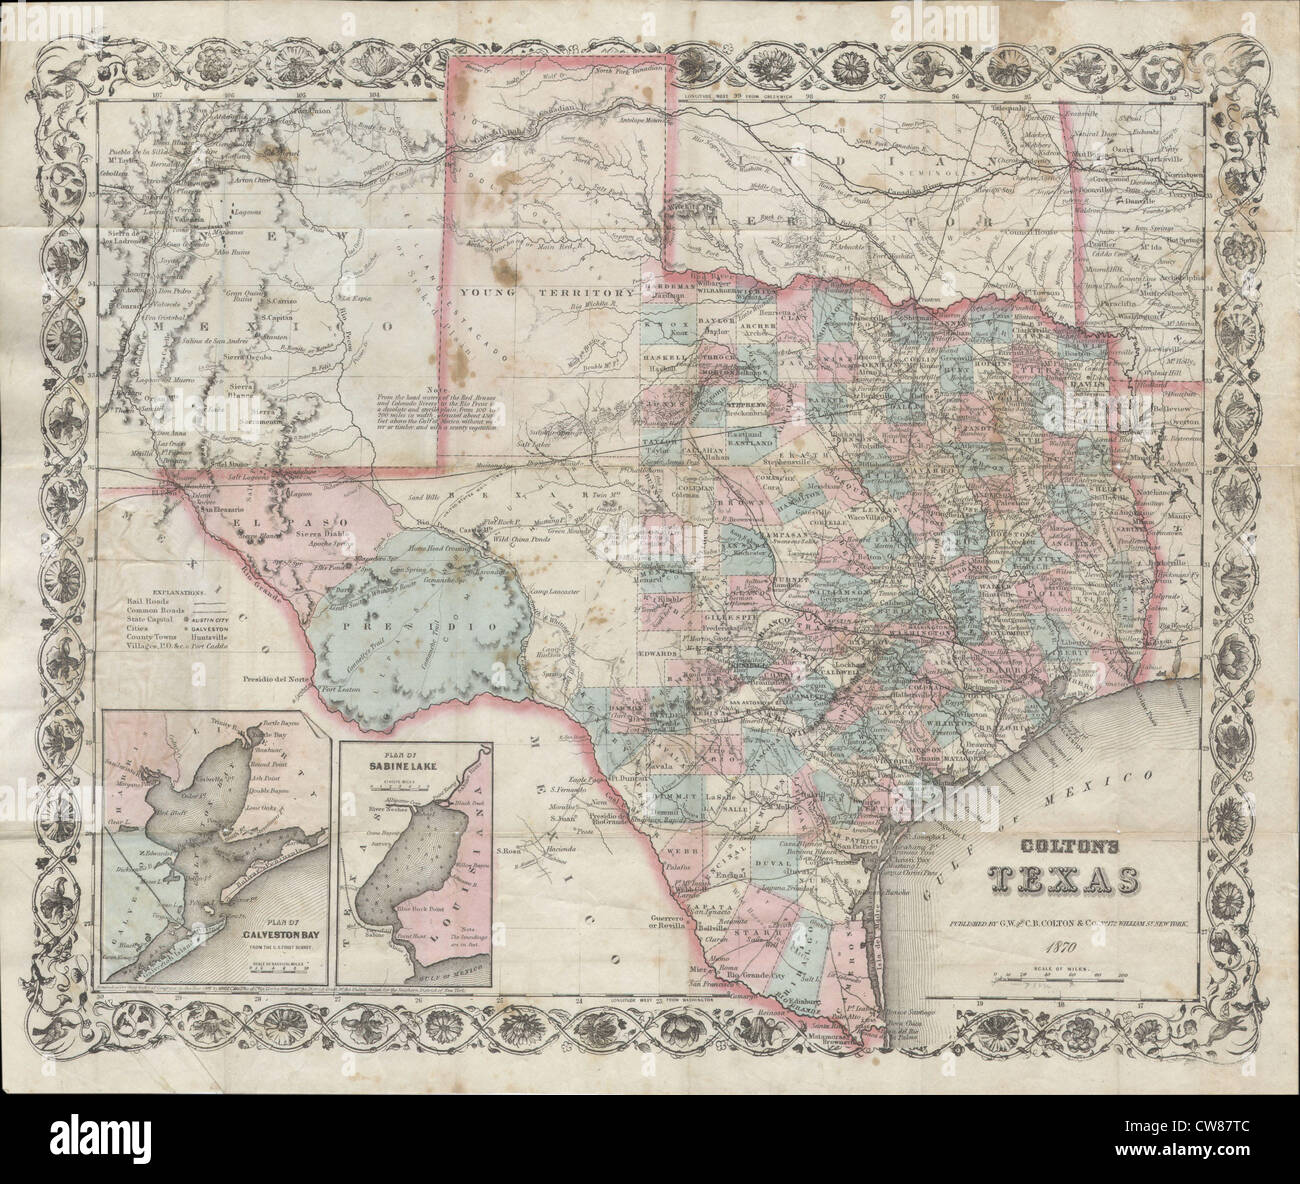 1870 Map Of Texas.1870 Colton Pocket Map Of Texas Stock Photo 49968924 Alamy